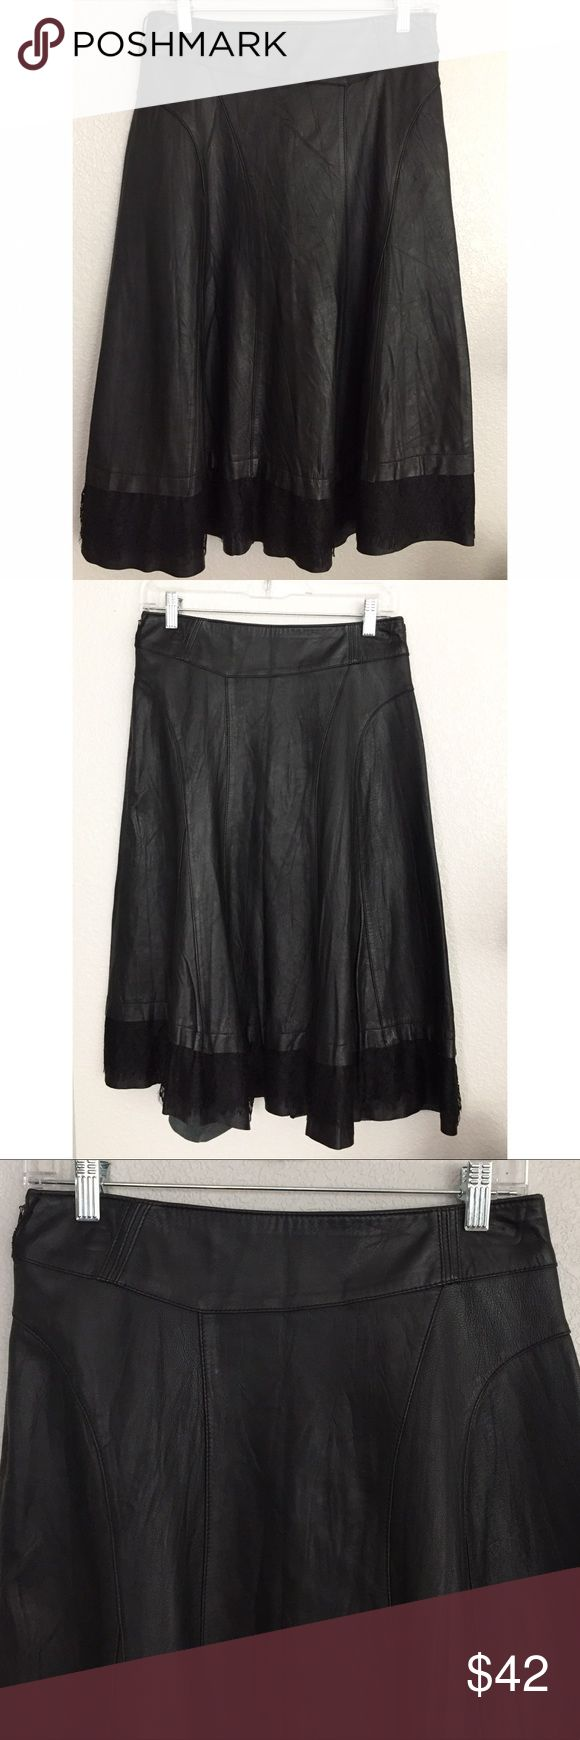 "Black Leather Midi Skirt with Lace Hem Black Leather Midi Skirt with a slightly asymmetrical cut. It has a Lace Hem over more raw cut leather. Very unique piece. Zips up on the side. 27.5"" long. Made in Korea. Skirts Midi"